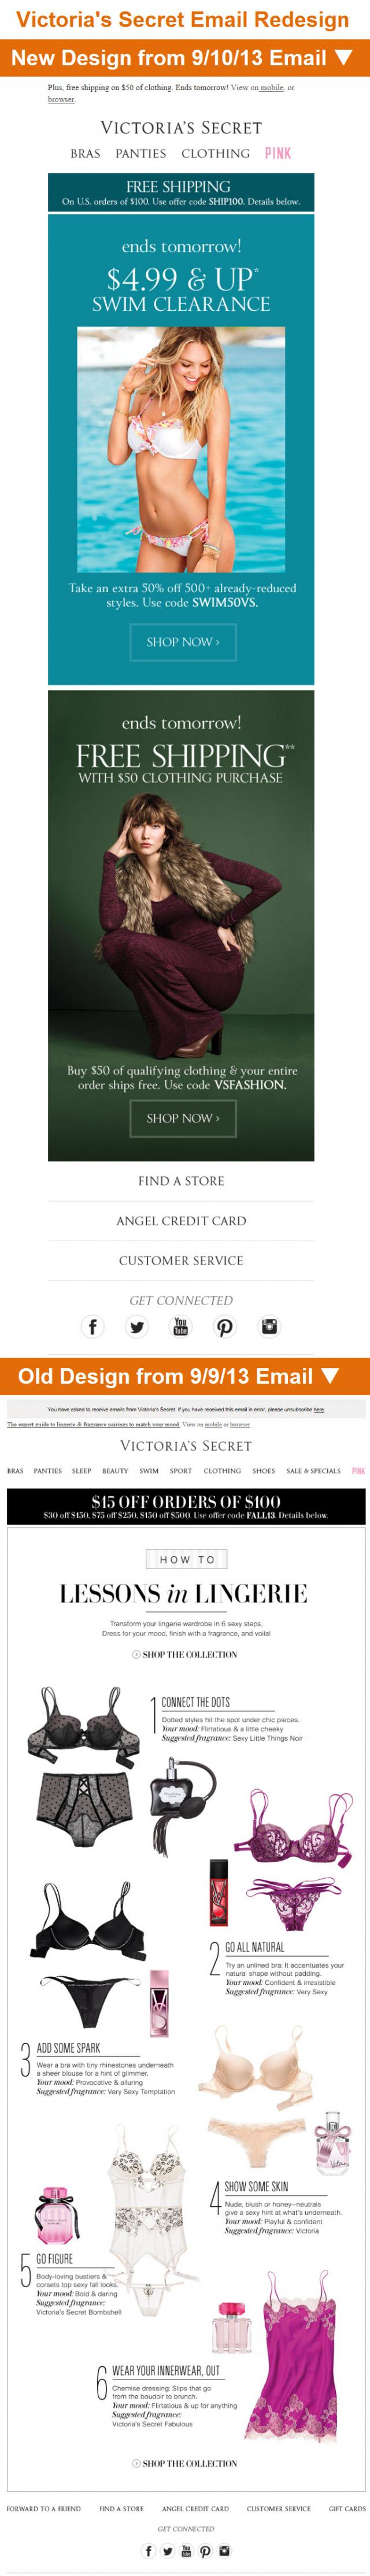 Victoria's Secret Email Redesign